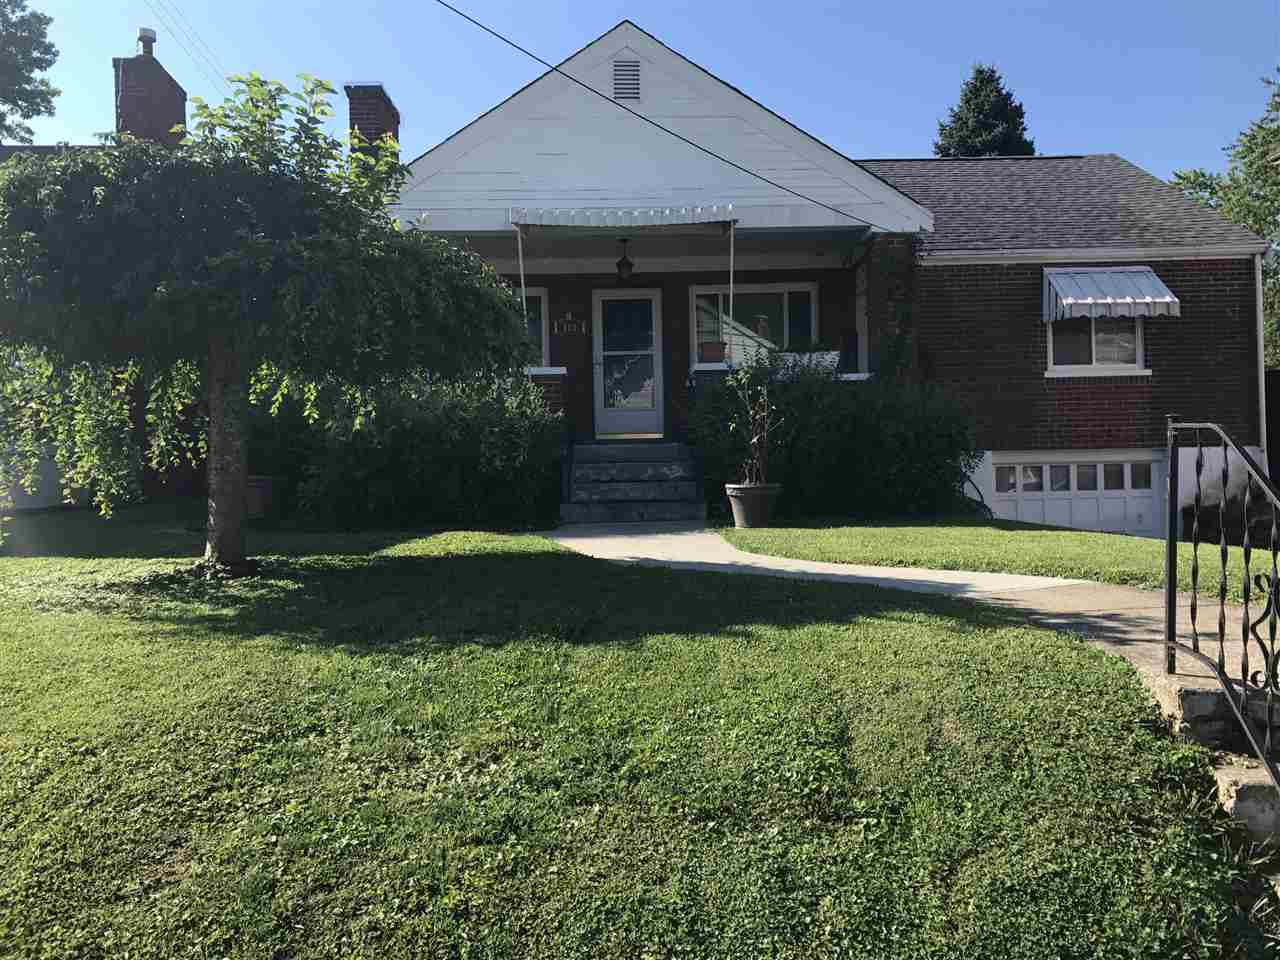 Photo 1 for 103 W 34th street Latonia, KY 41015